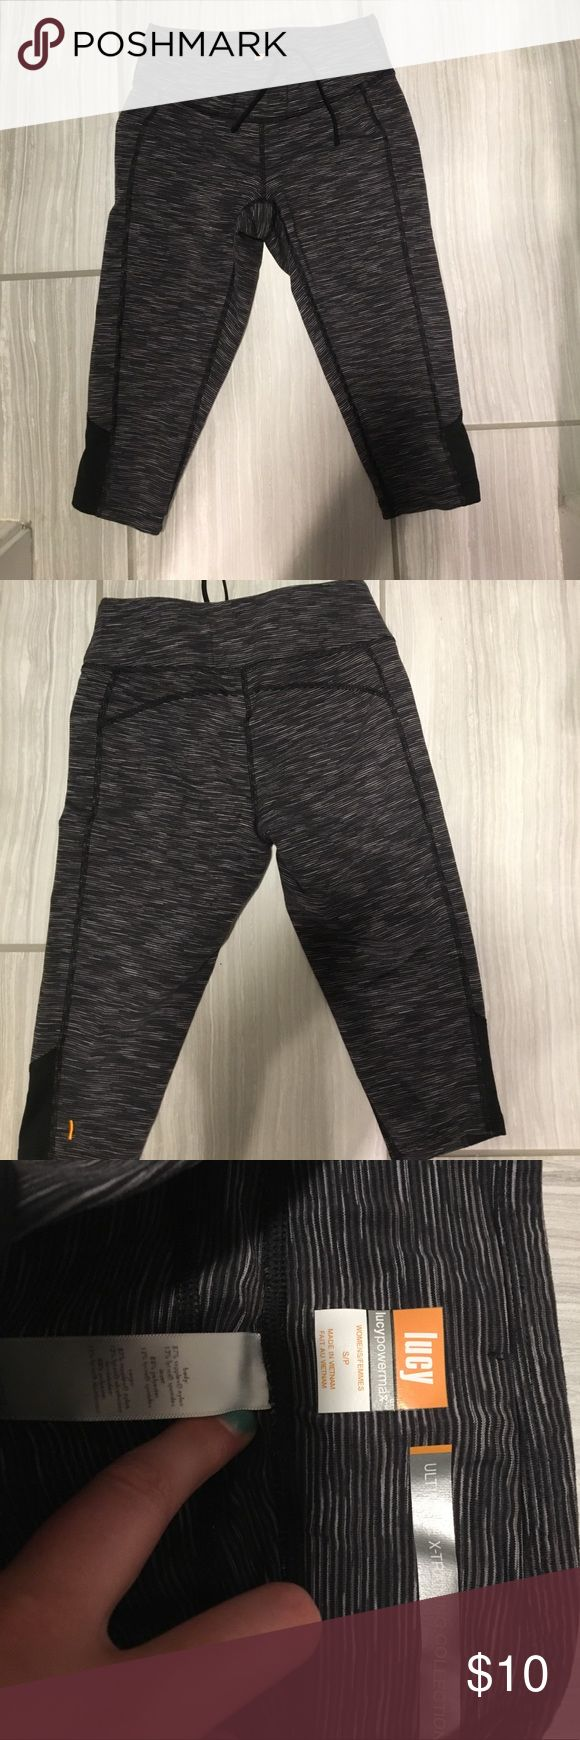 Lucy Athletic Capri leggings size small Thick stretch leggings with drawstring at waist for extra security. Fit shorter than lululemon capris. In good condition with no real signs of wear. Lucy Pants Leggings